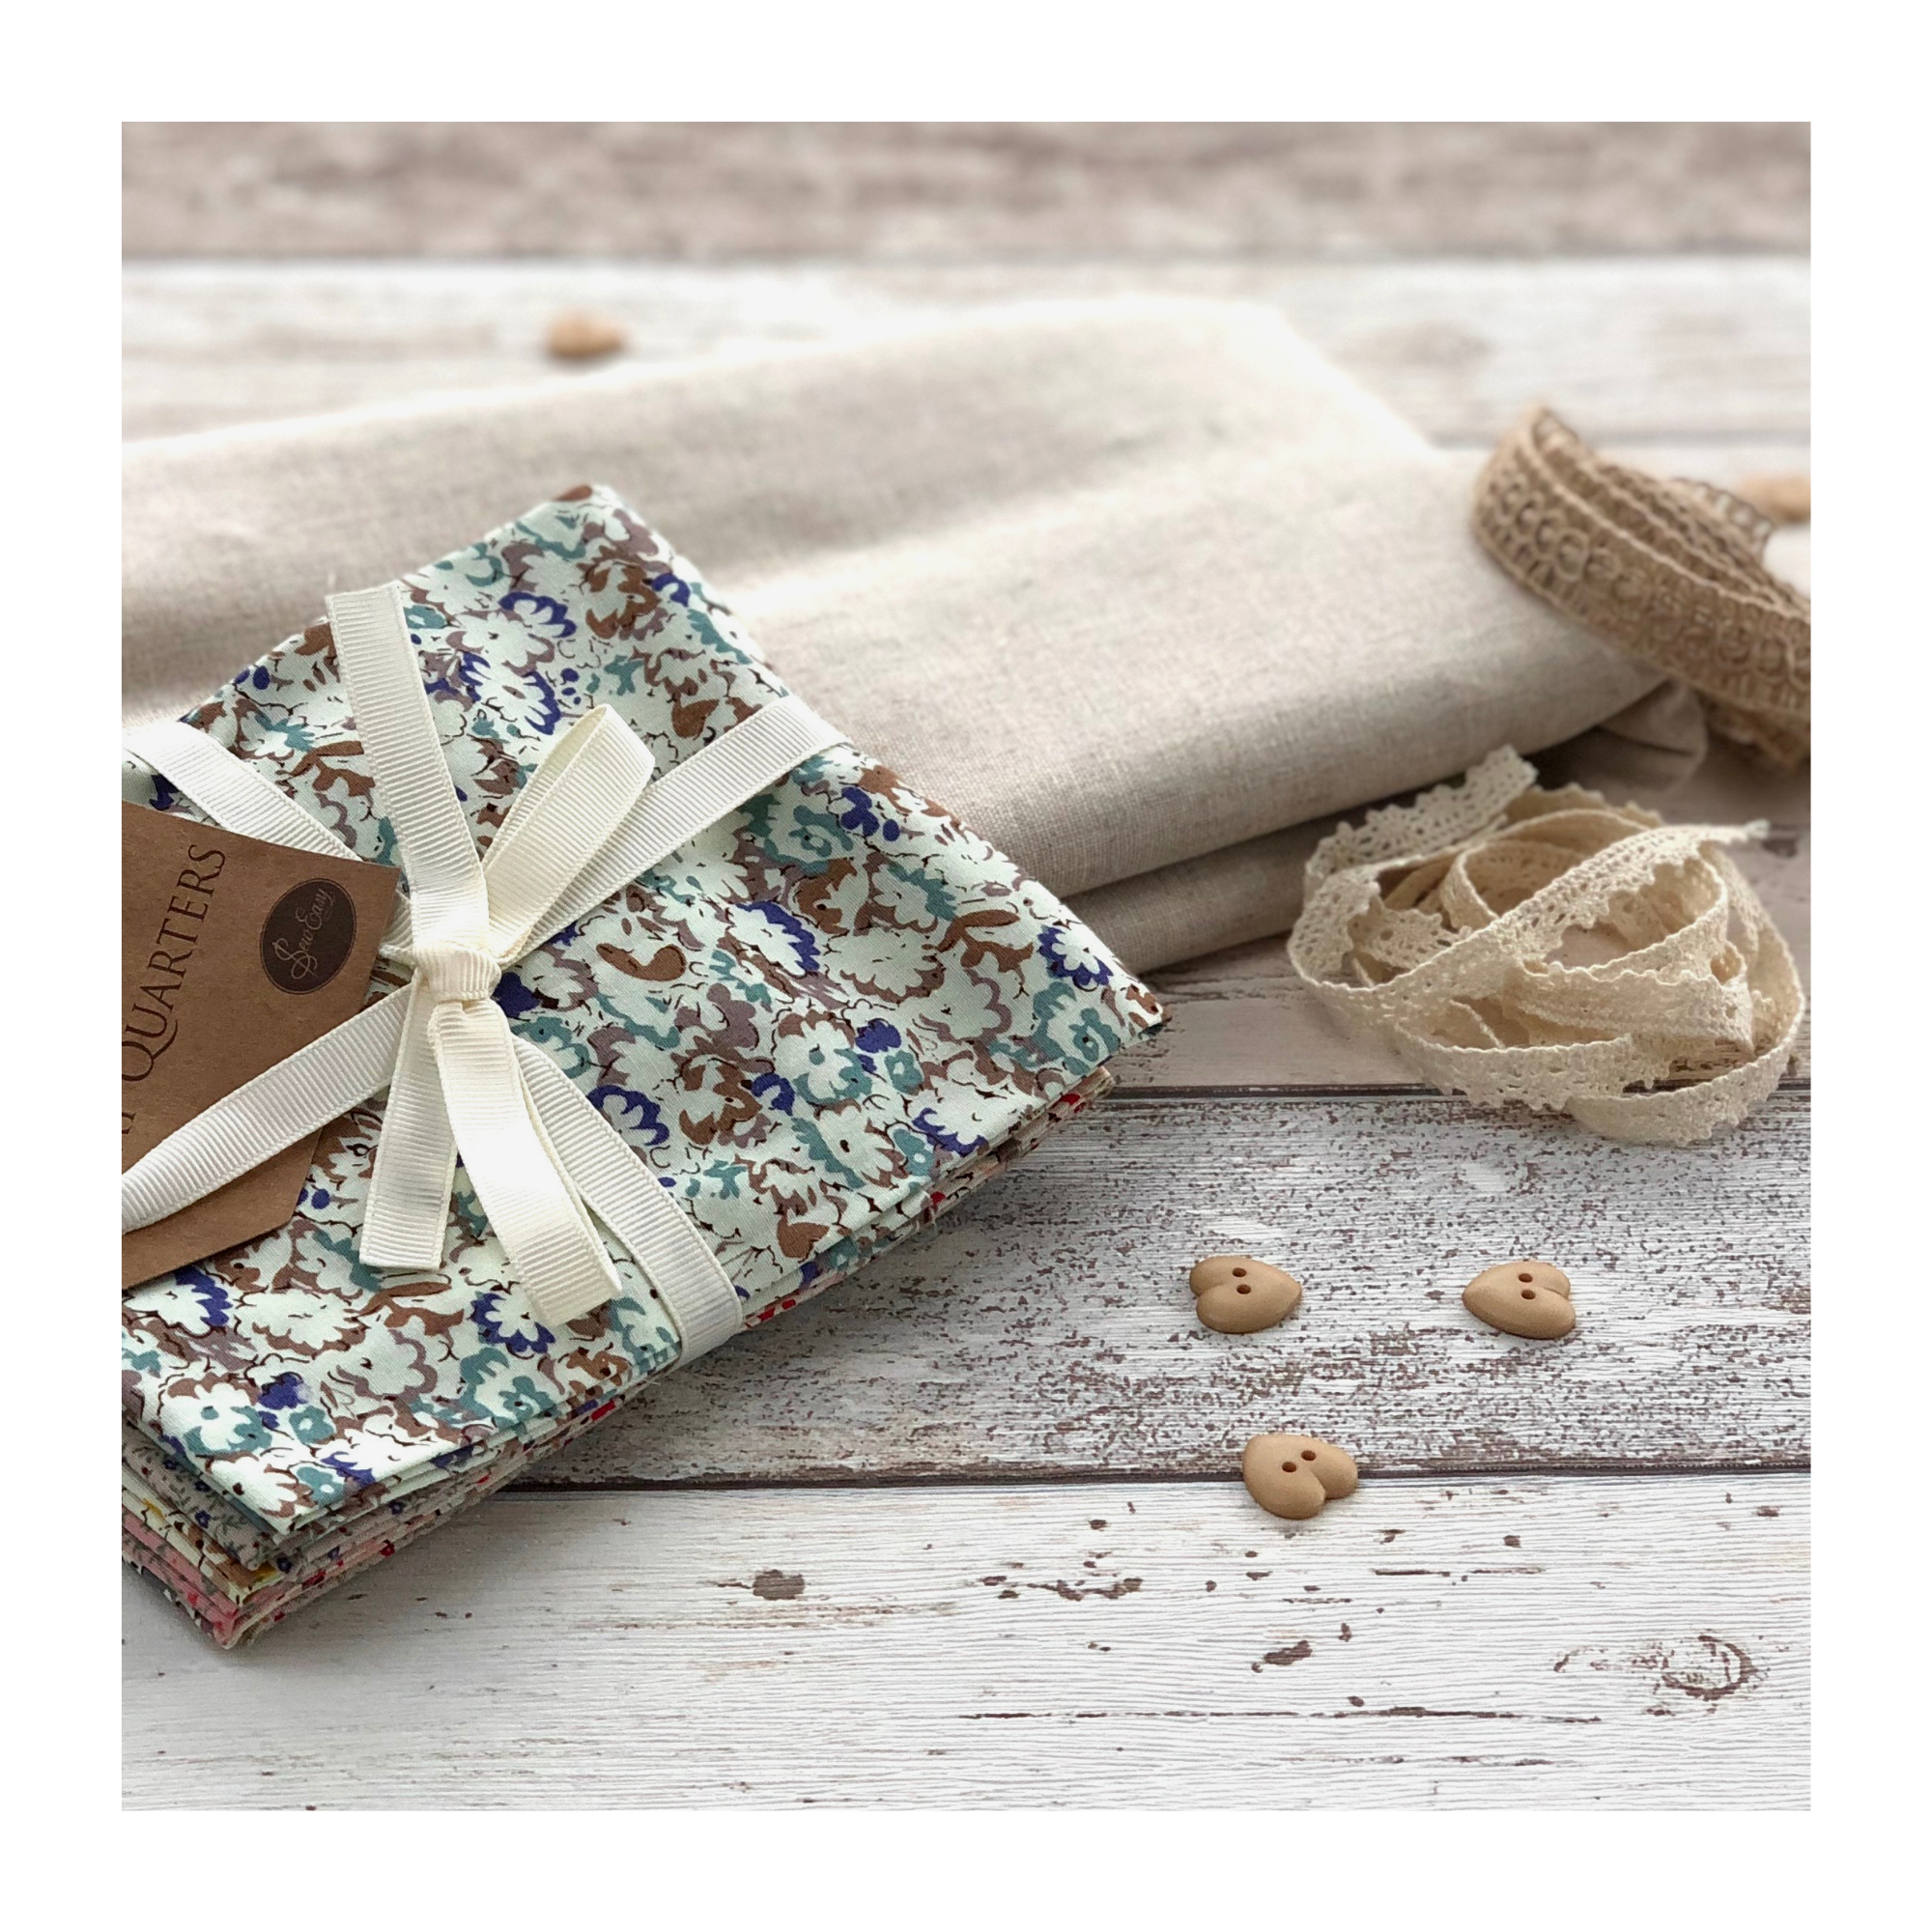 Do you have an idea you would like created in fabric or textiles - a lovely keepsake